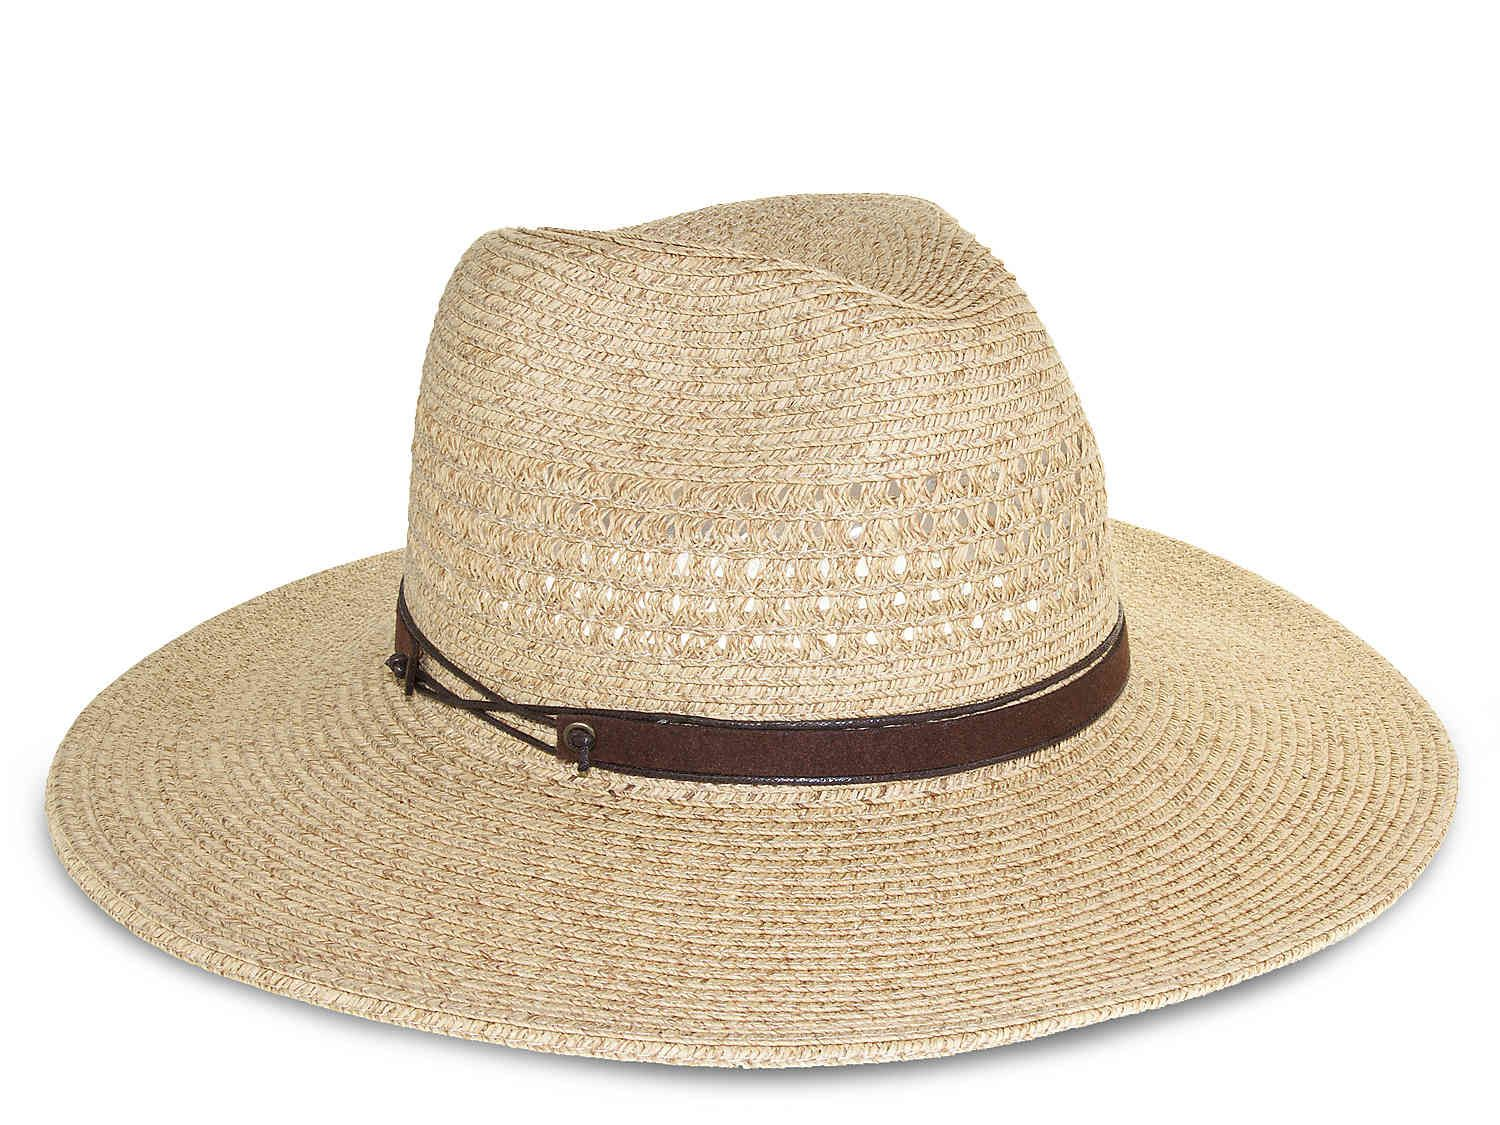 aab7fbd8 Packable Rancher Hat | Fashion | Hats, Fashion, Boots